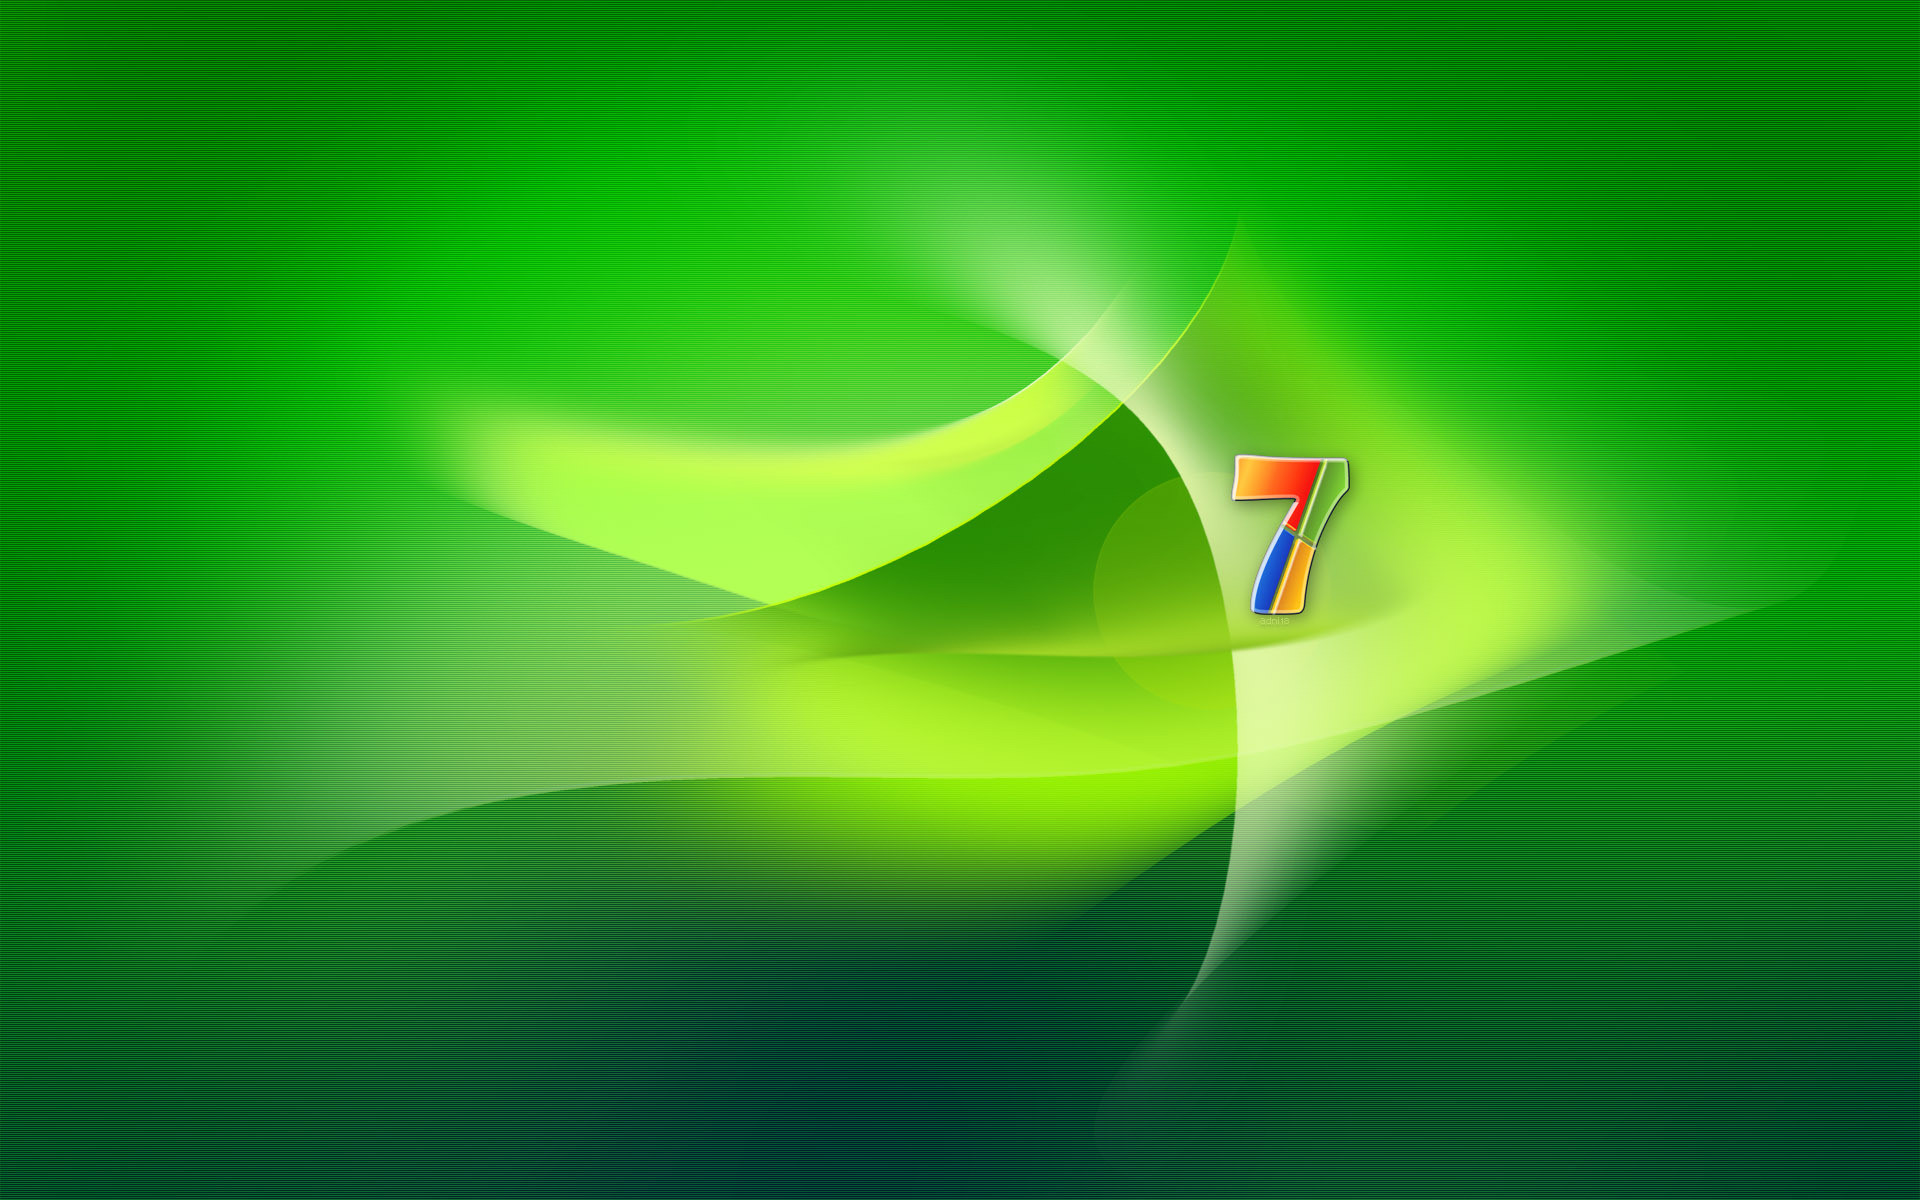 1920x1200 Green images Windows vista HD wallpaper and background photos